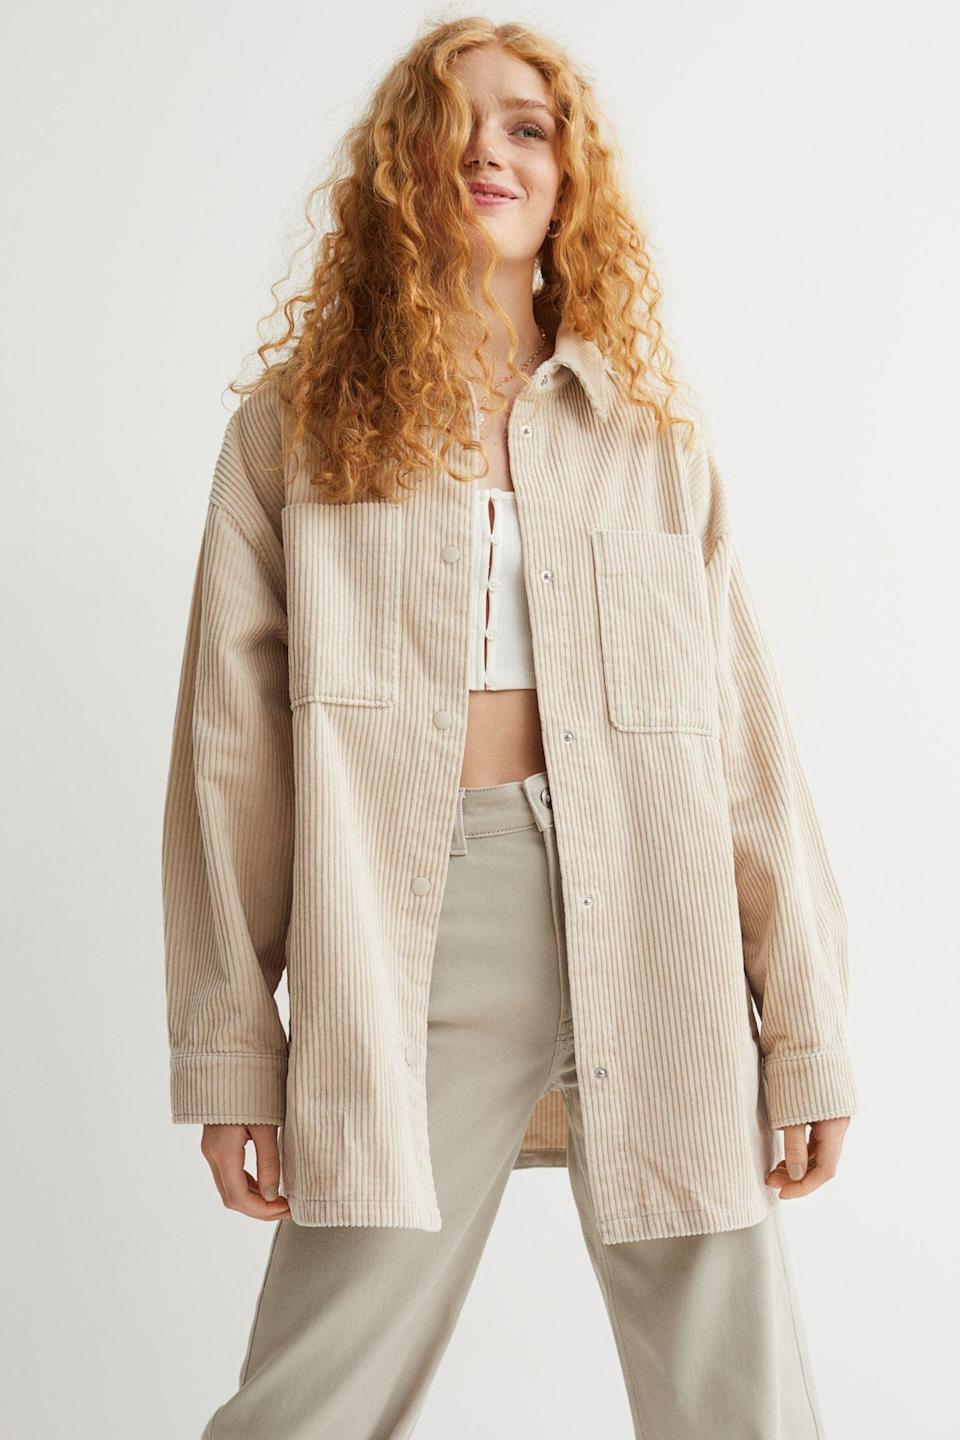 <p>As temperatures slowly start to decline, you'll start reaching for light jackets to fend off the chills. This <span>Shirt Jacket</span> ($34, originally $40) is a great options as it's warm, but also easy to wear.</p>